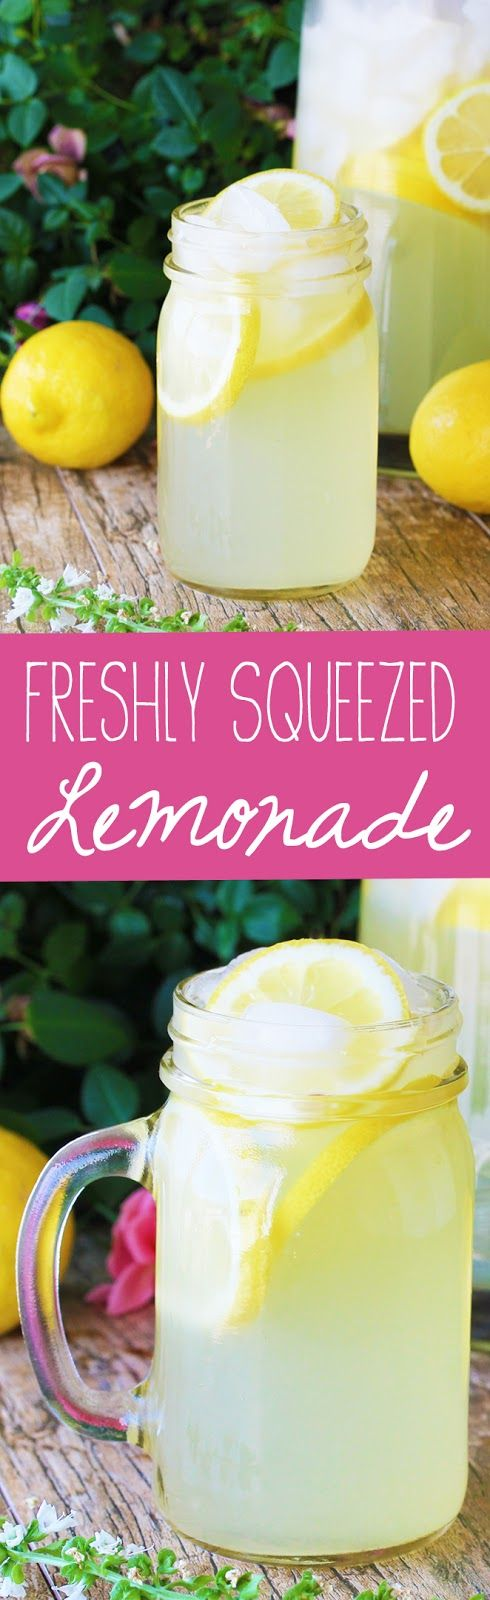 1000+ ideas about How To Make Lemonade on Pinterest ...